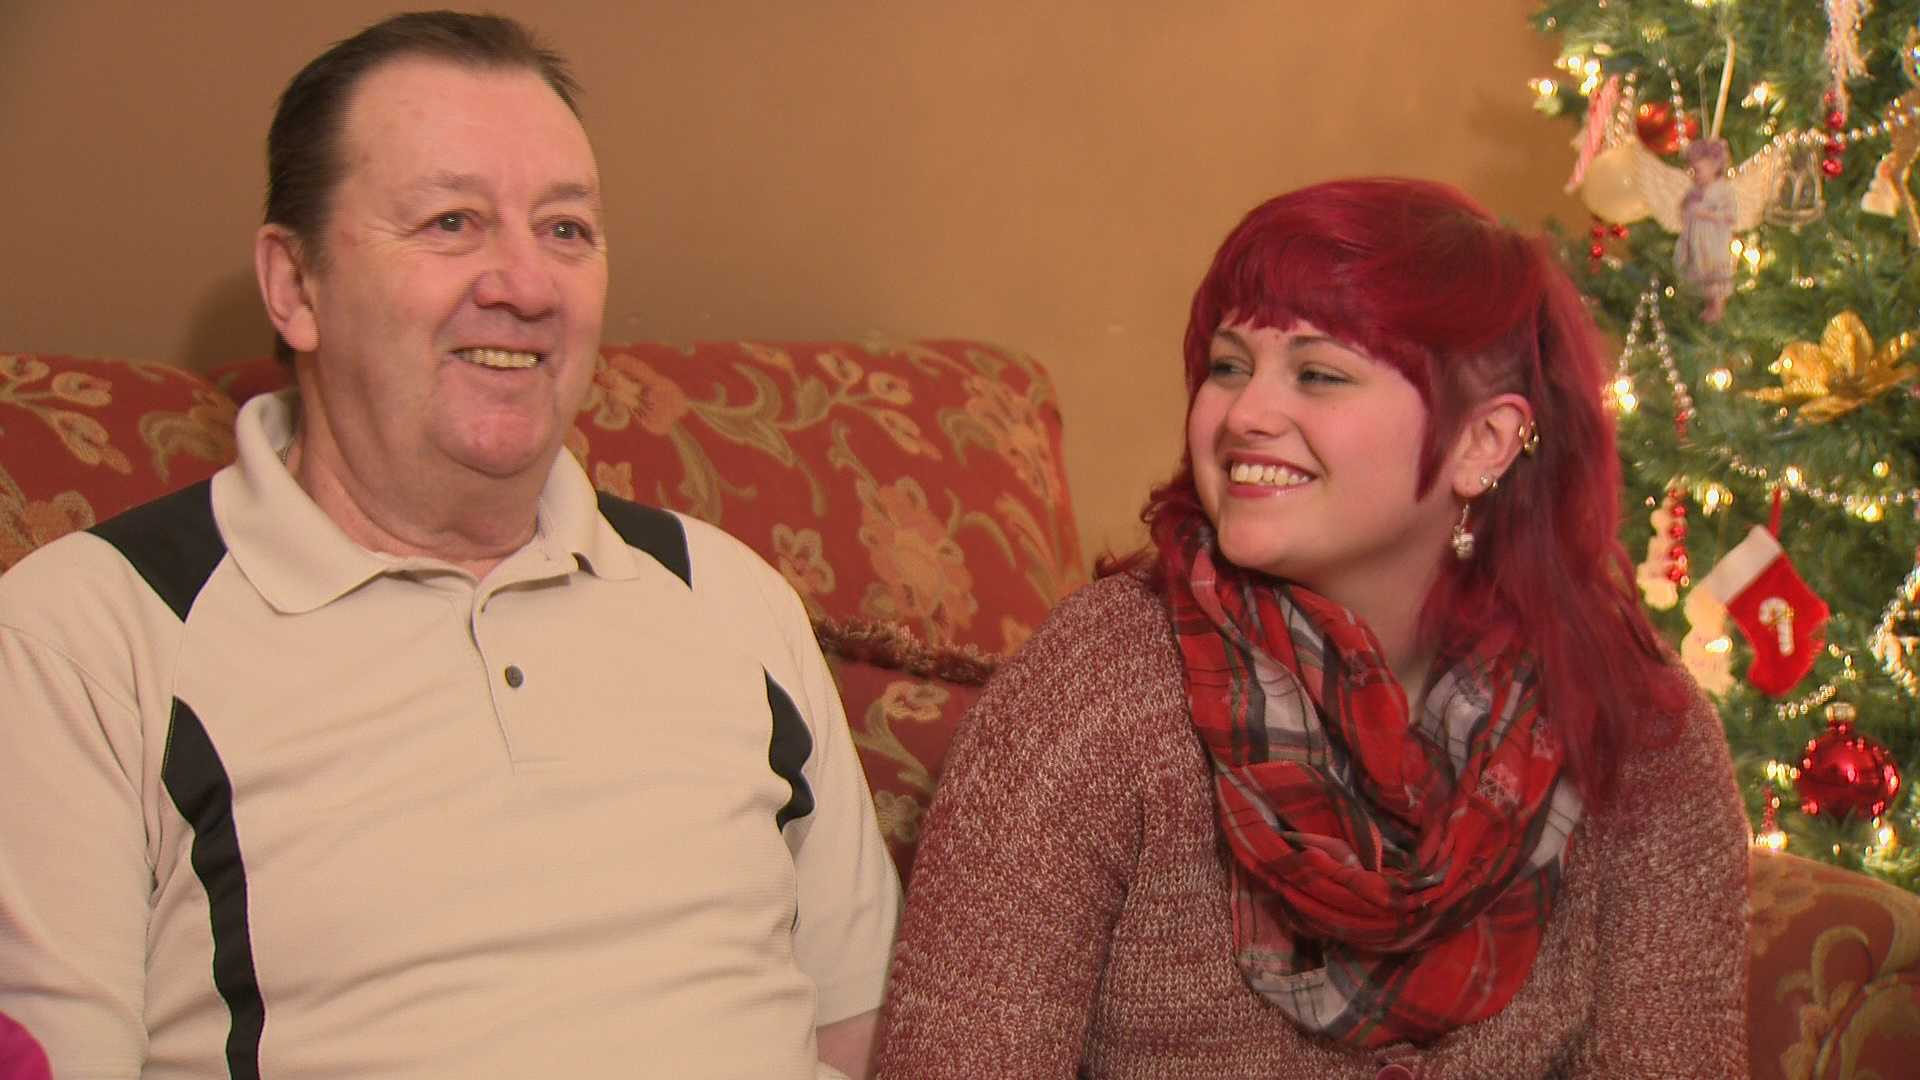 Chelsea Elliott is all smiles after helping save the life of her grandfather, Frank Almsteadt.